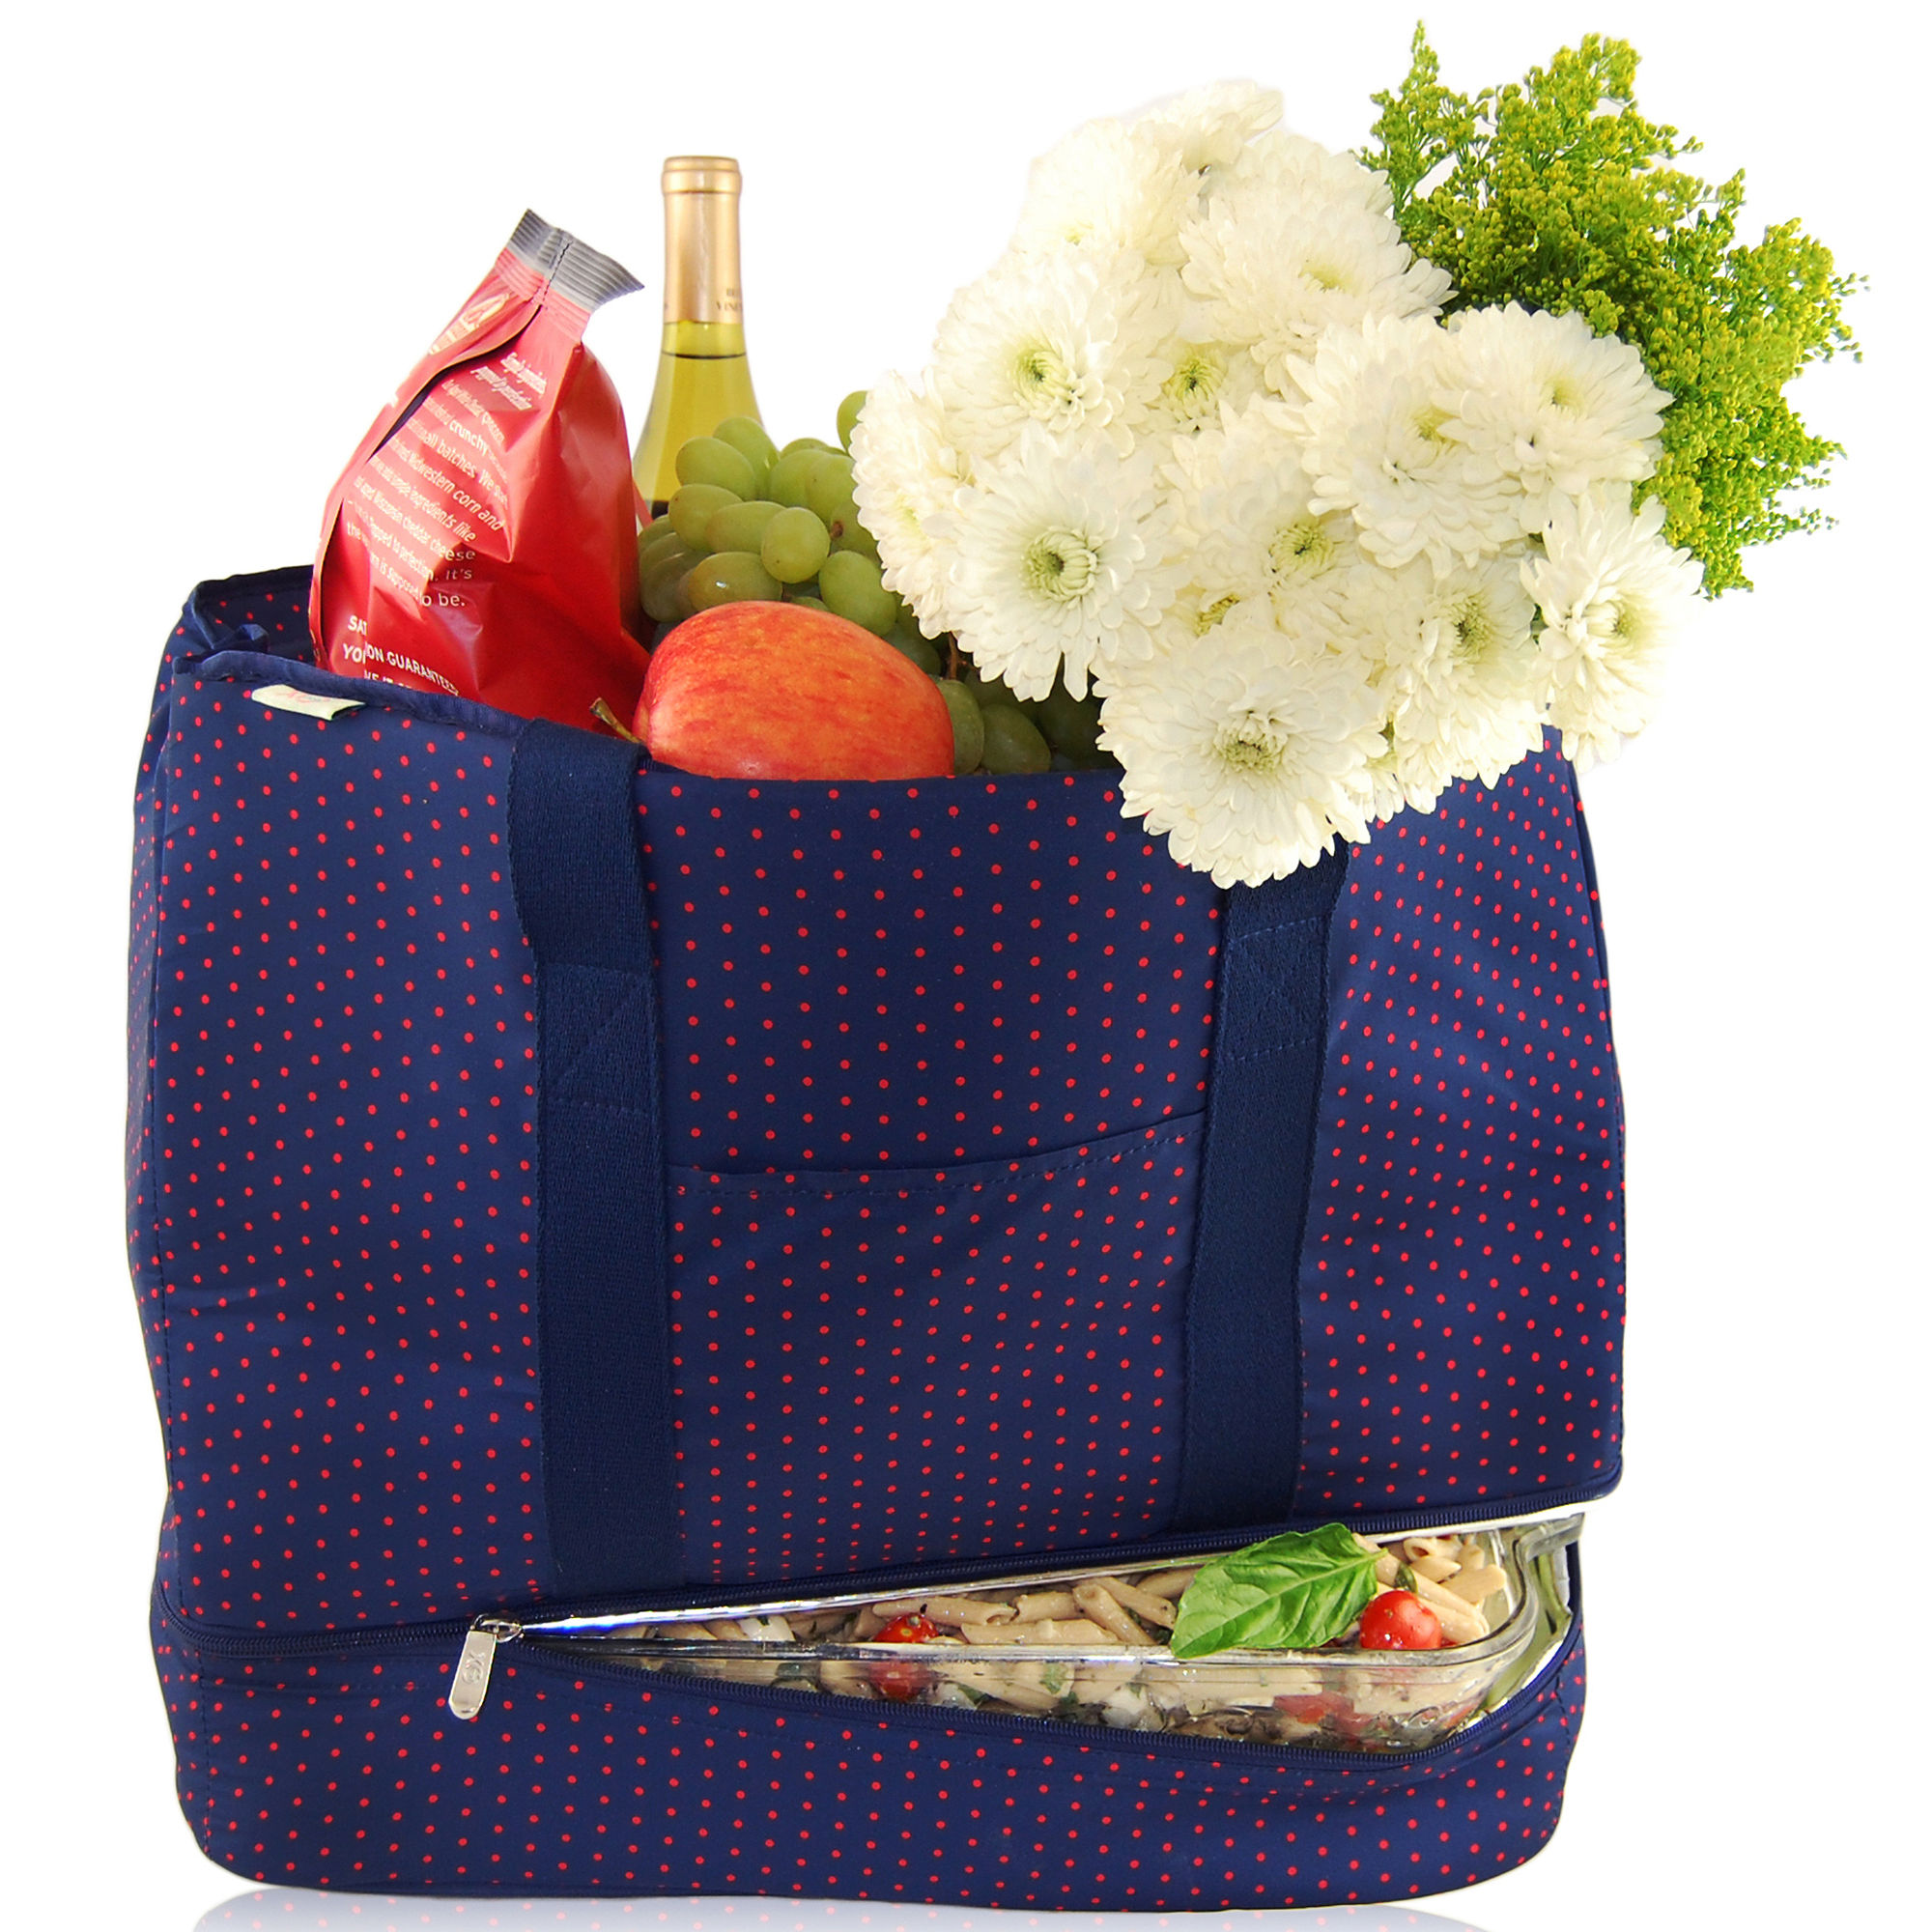 BlueAvocado By Lauren Conrad Insulated Super Party Tote